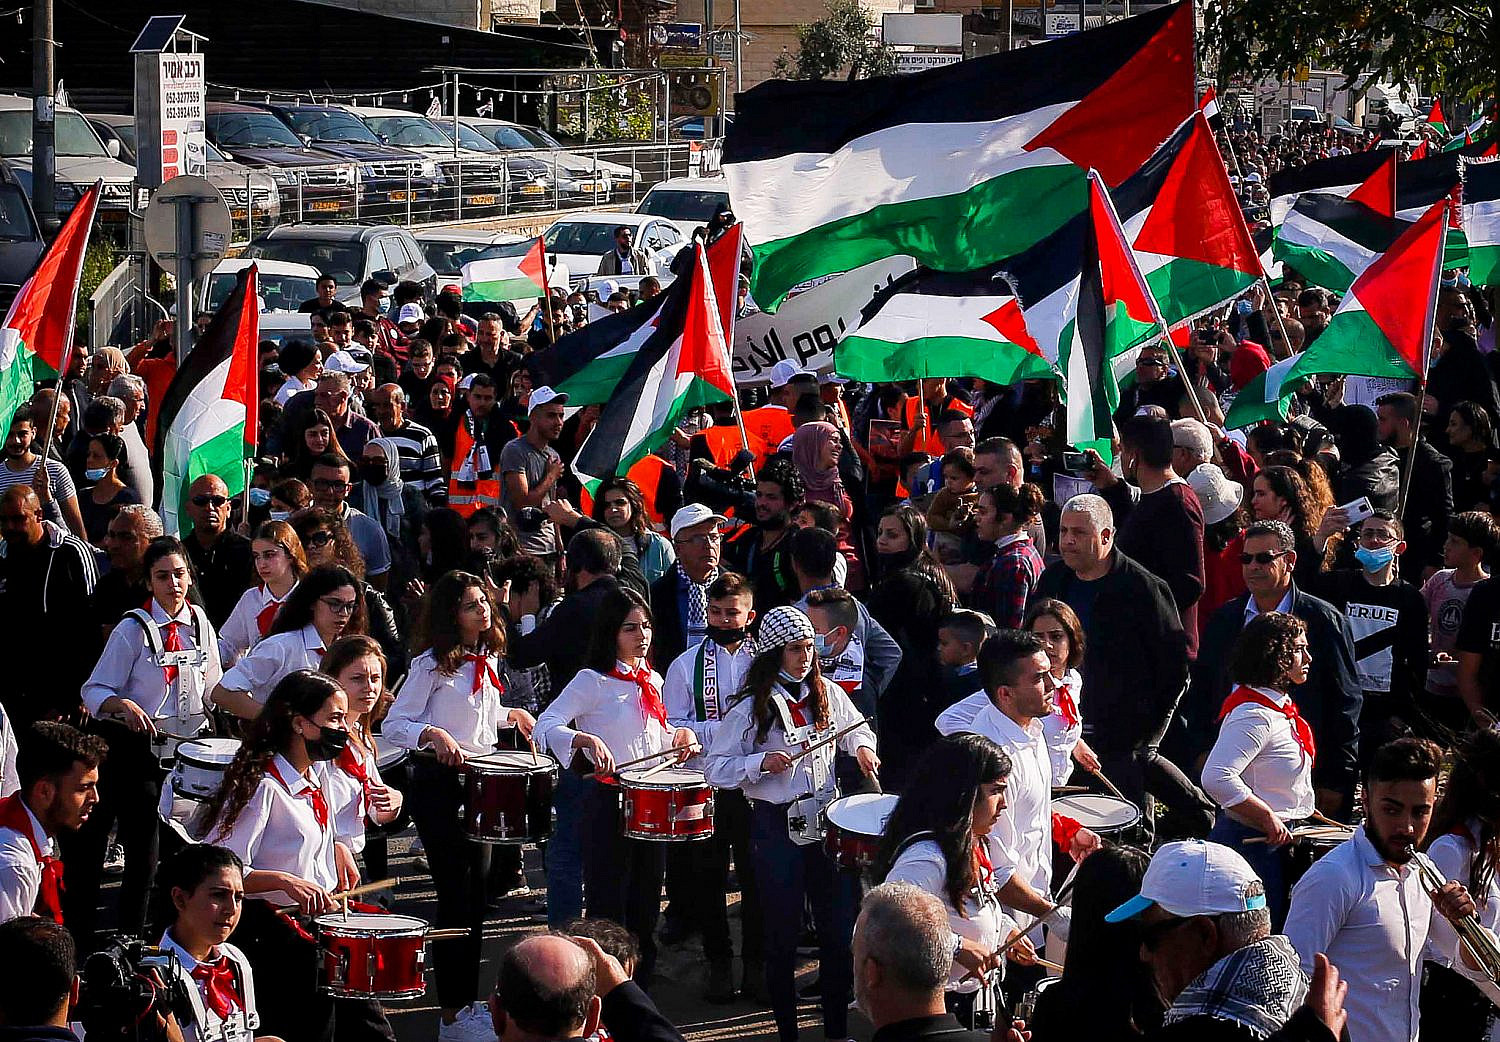 Palestinian citizens of Israel march during a protest marking Land Day, in Arrabe, northern Israel, March 30, 2021. (Jamal Awad/Flash90)